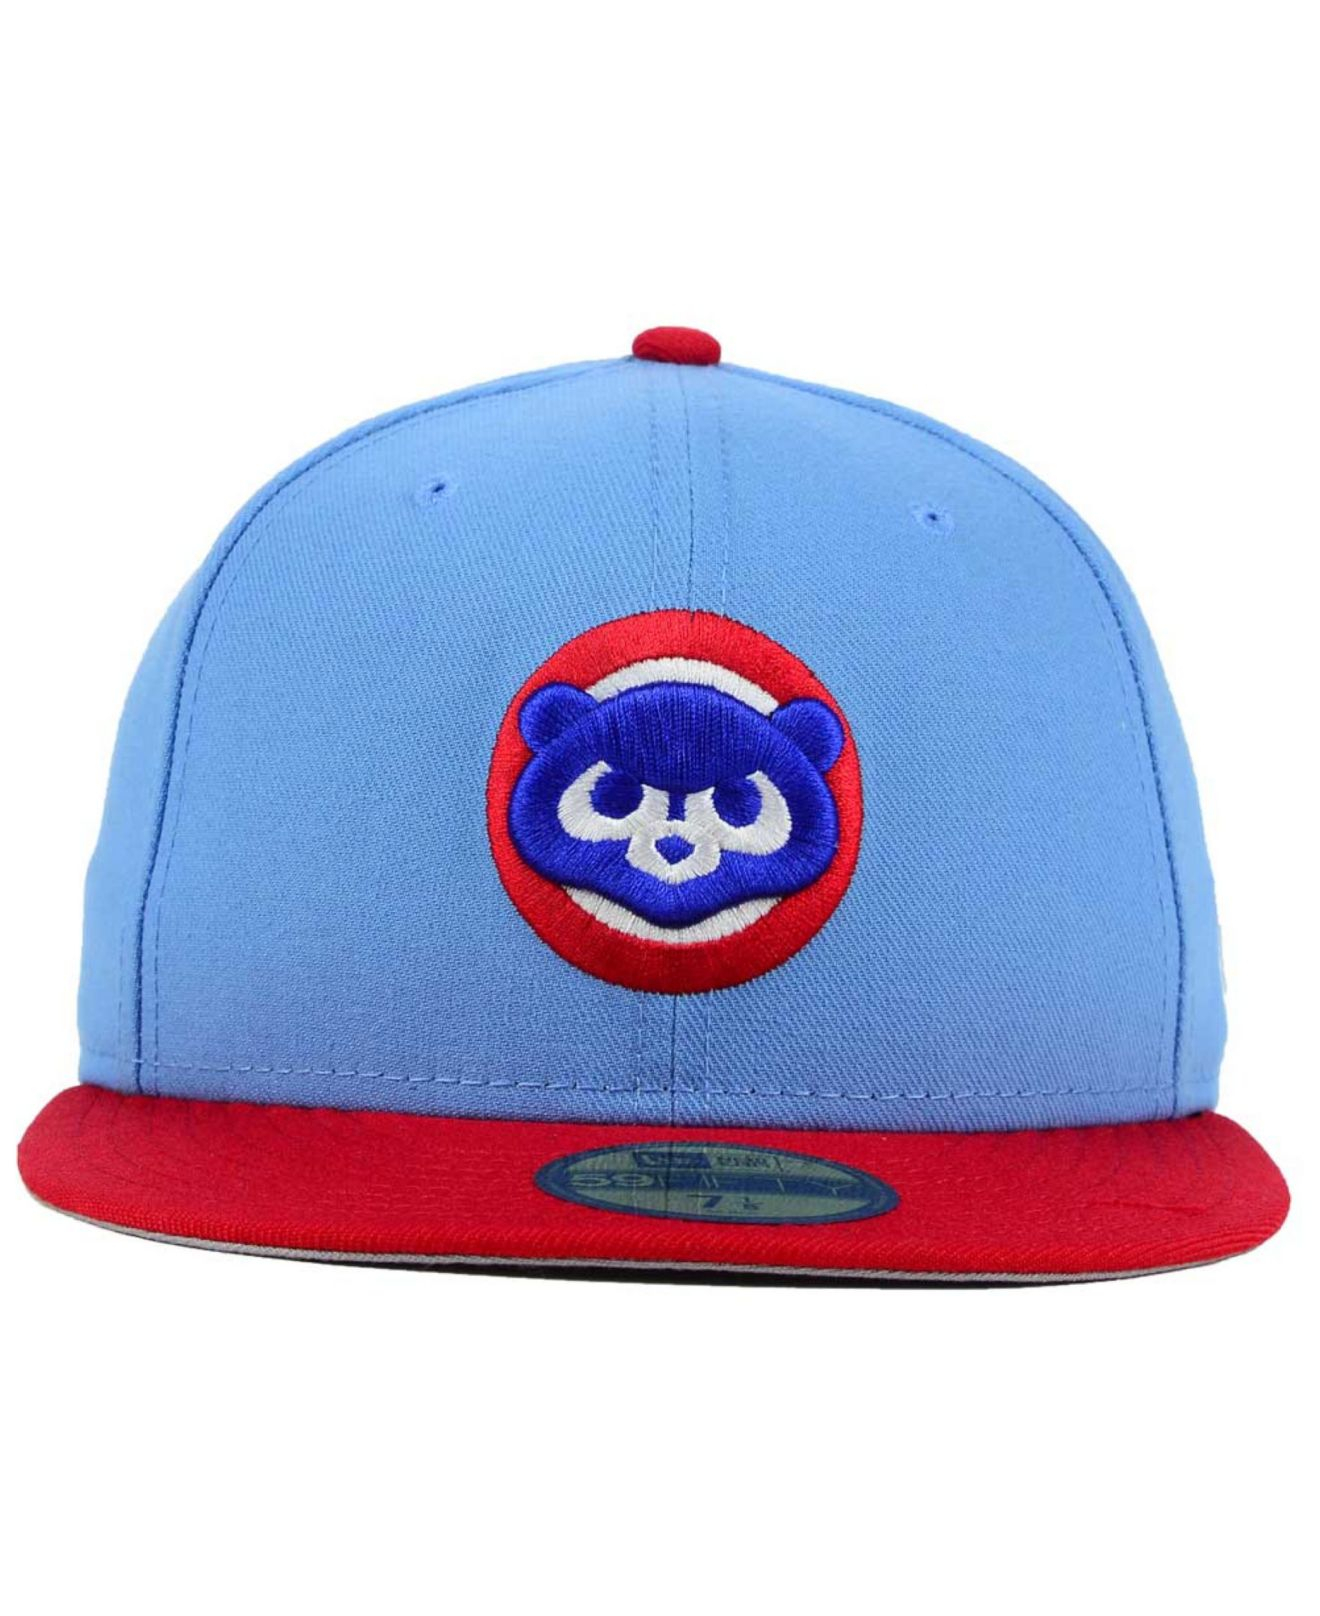 new concept f72cd 12bdb official store gray black new era 20708629 philadelphia phillies mlb the  eaton 59fifty cap 2f31e 90c7e  spain lyst ktz chicago cubs cooperstown 2  tone ...